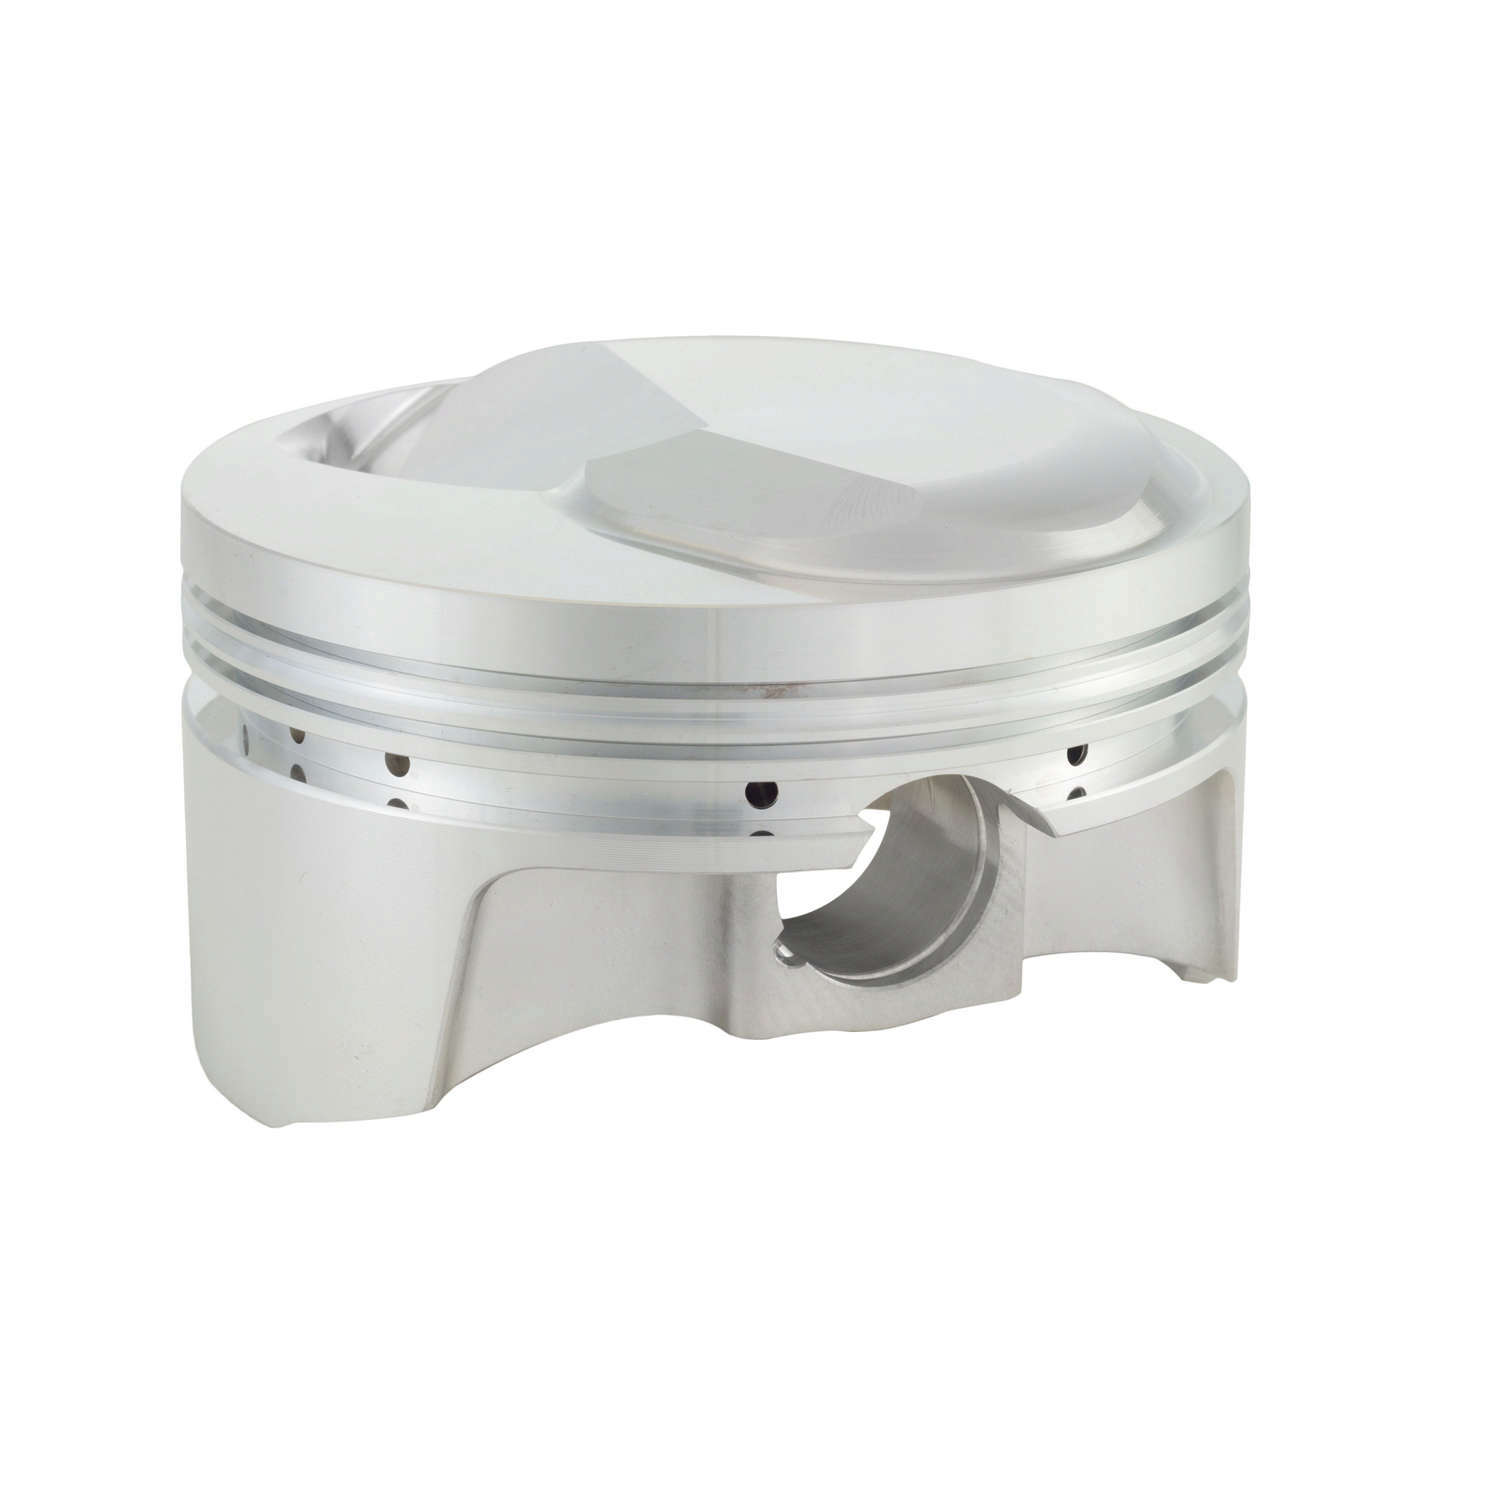 Bullet Pistons BBC5110-030-8 Piston and Ring, Forged, 4.280 in Bore, 1/16 x 1/16 x 3/16 in Ring Grooves, Plus 24.3 cc, Big Block Chevy, Kit